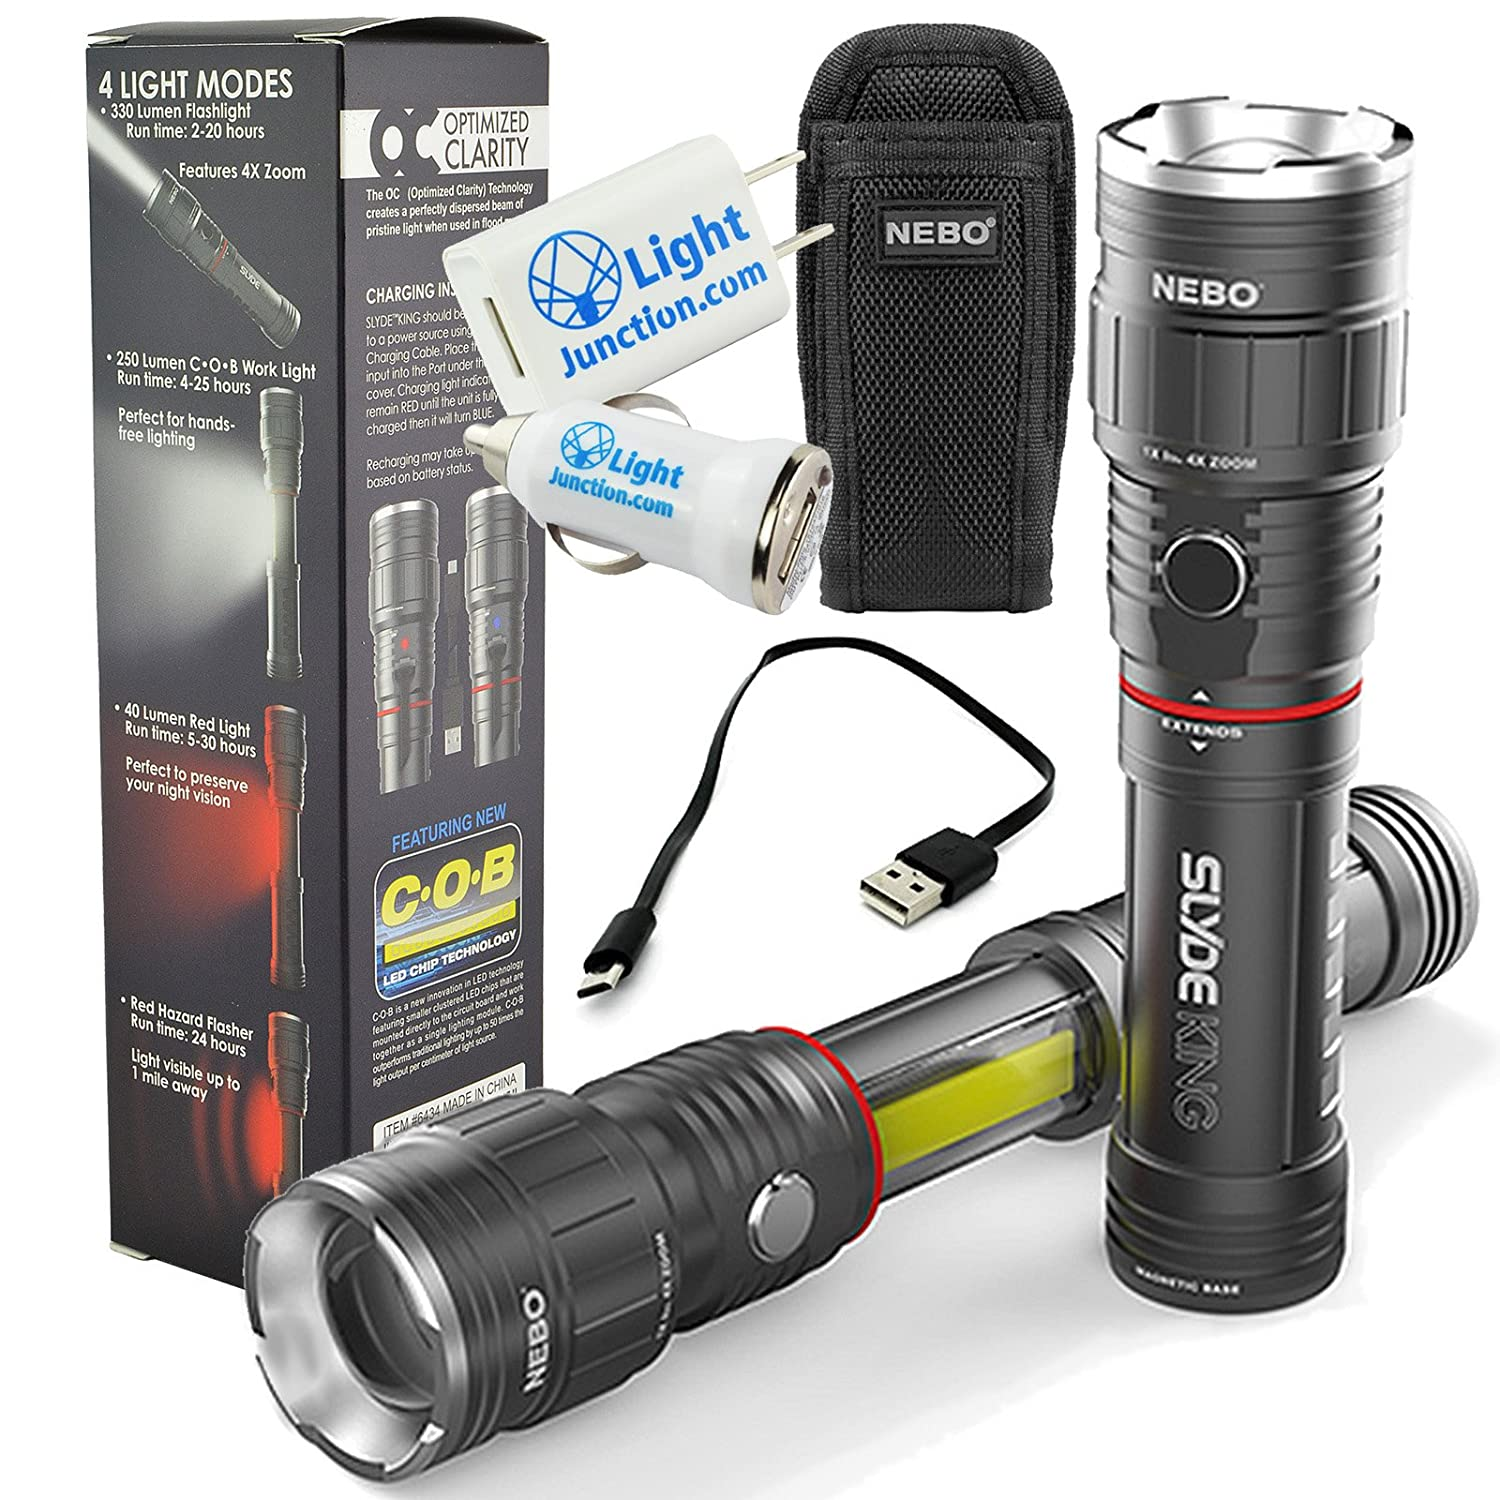 Nebo Slyde King 6434 Rechargeable LED Flashlight Work Light Adjustable Zoom with 6274 Holster and 1A LightJunction USB Plug Adapters